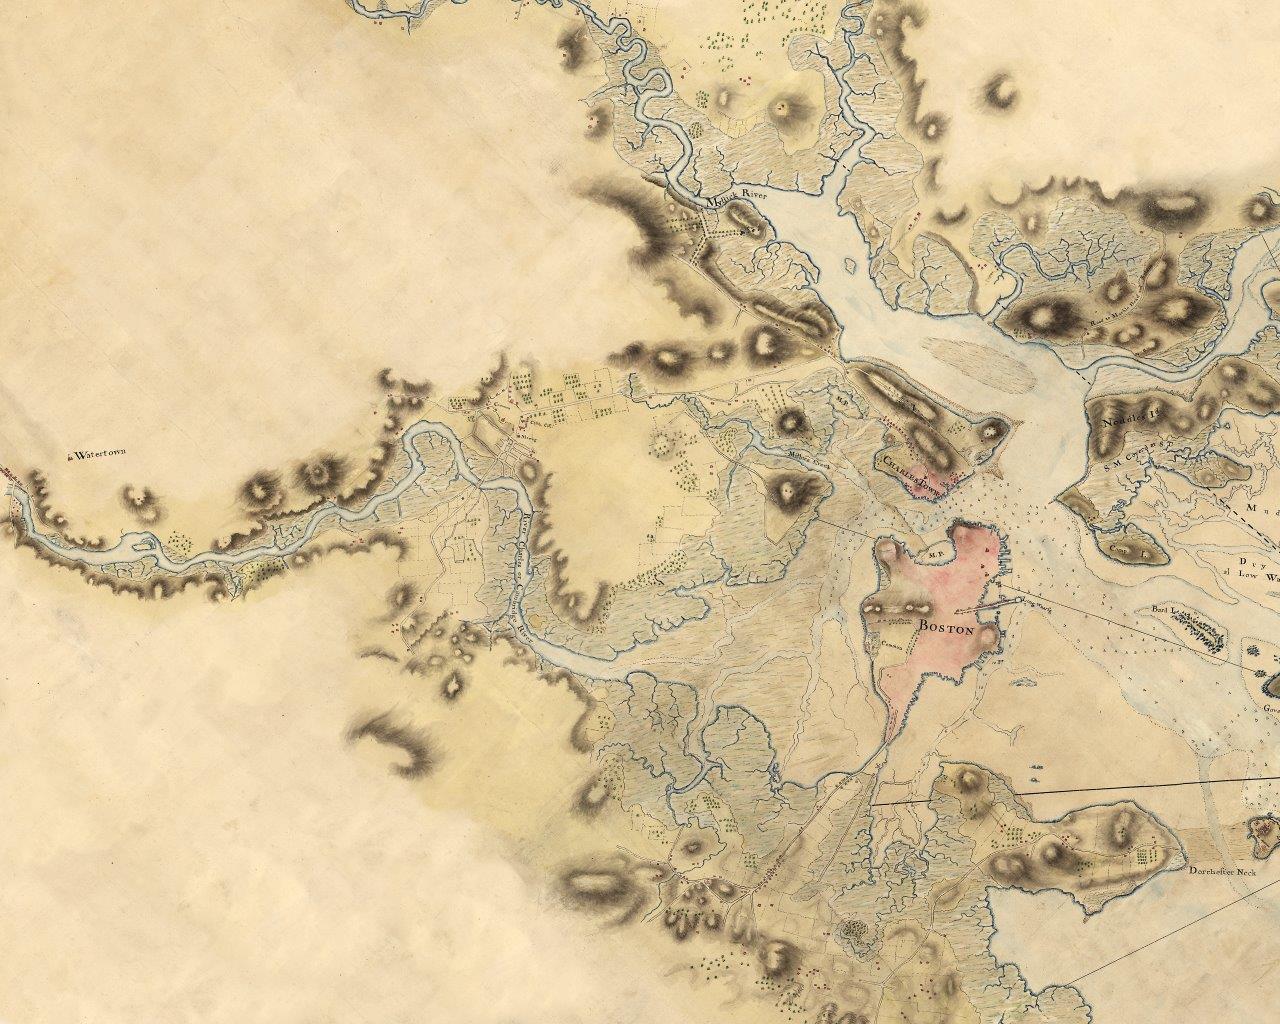 """Above Map: Lt. John Hills, """"Boston, with the surroundings, &c.,"""" early 1770s, detail. Courtesy of Library of Congress."""